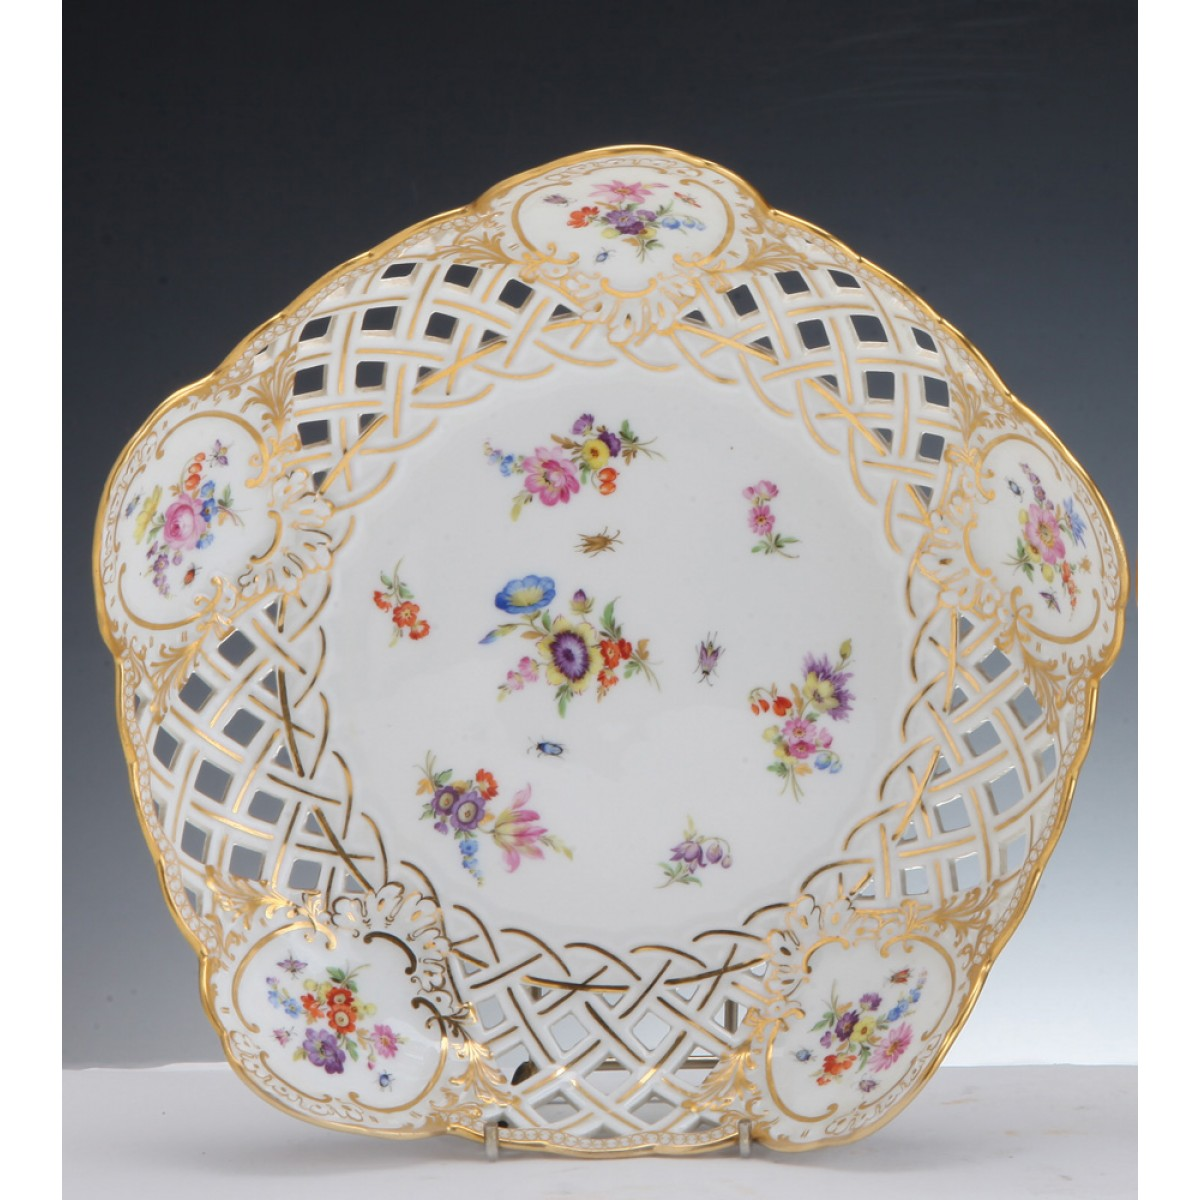 A Meissen porcelain reticulated bowl